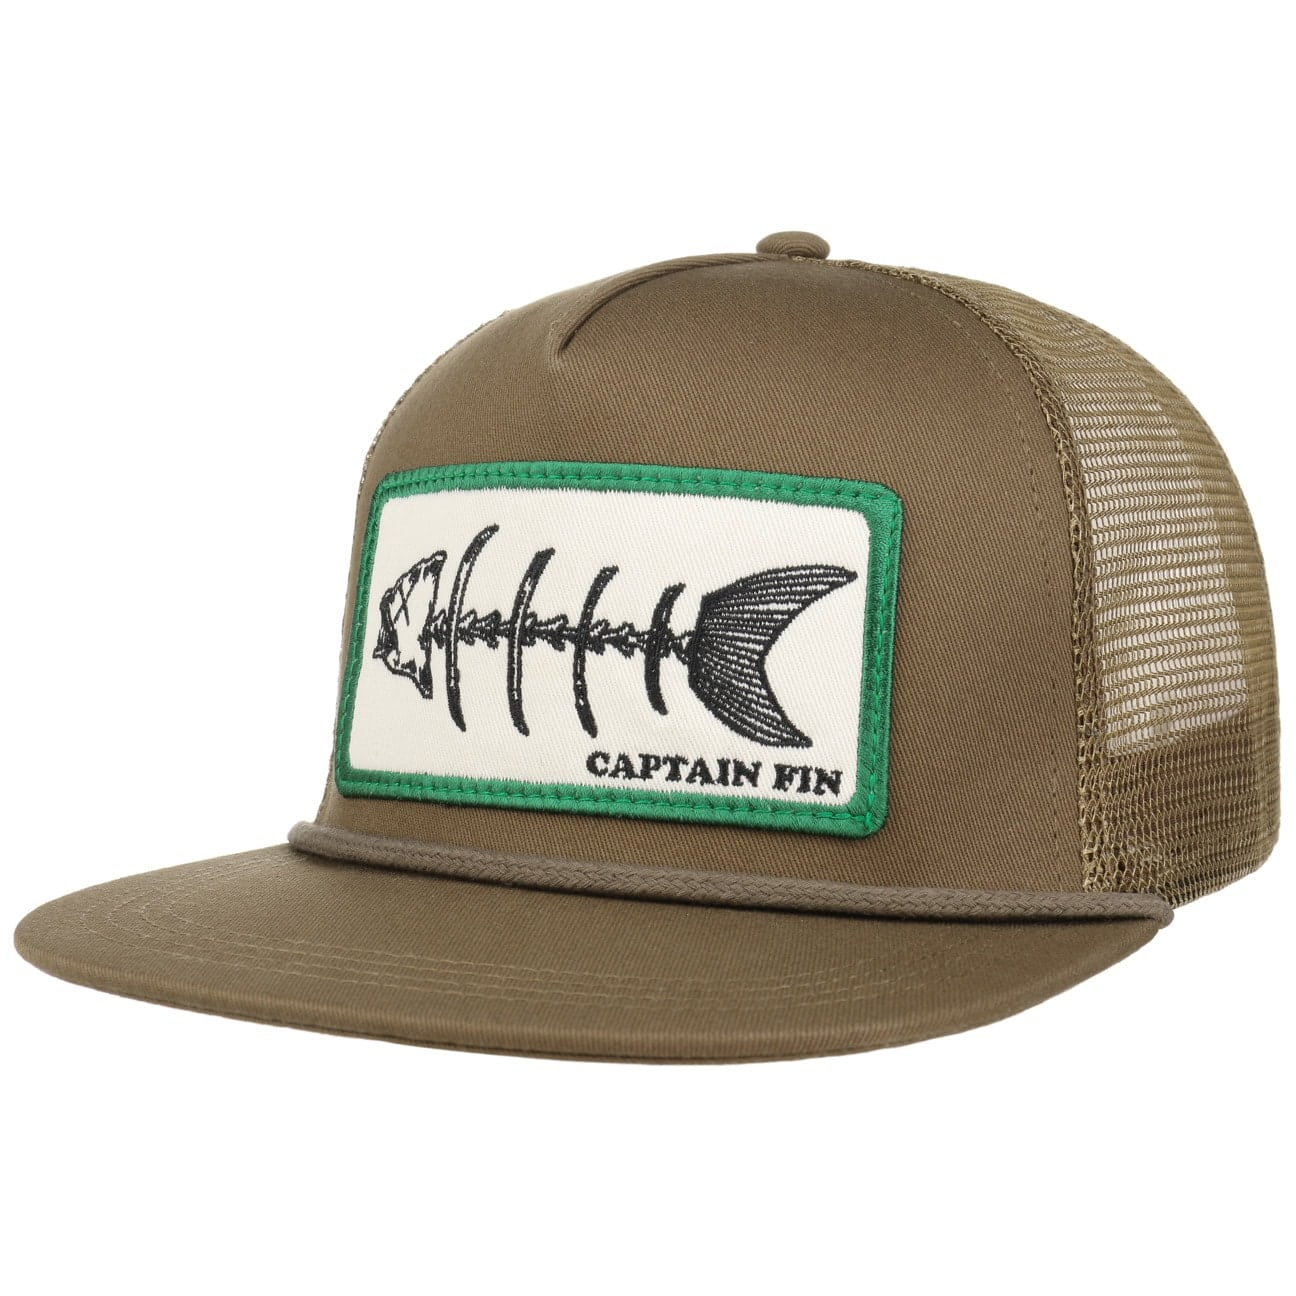 Gorra Fishbones Trucker by Captain Fin  gorra de b?isbol